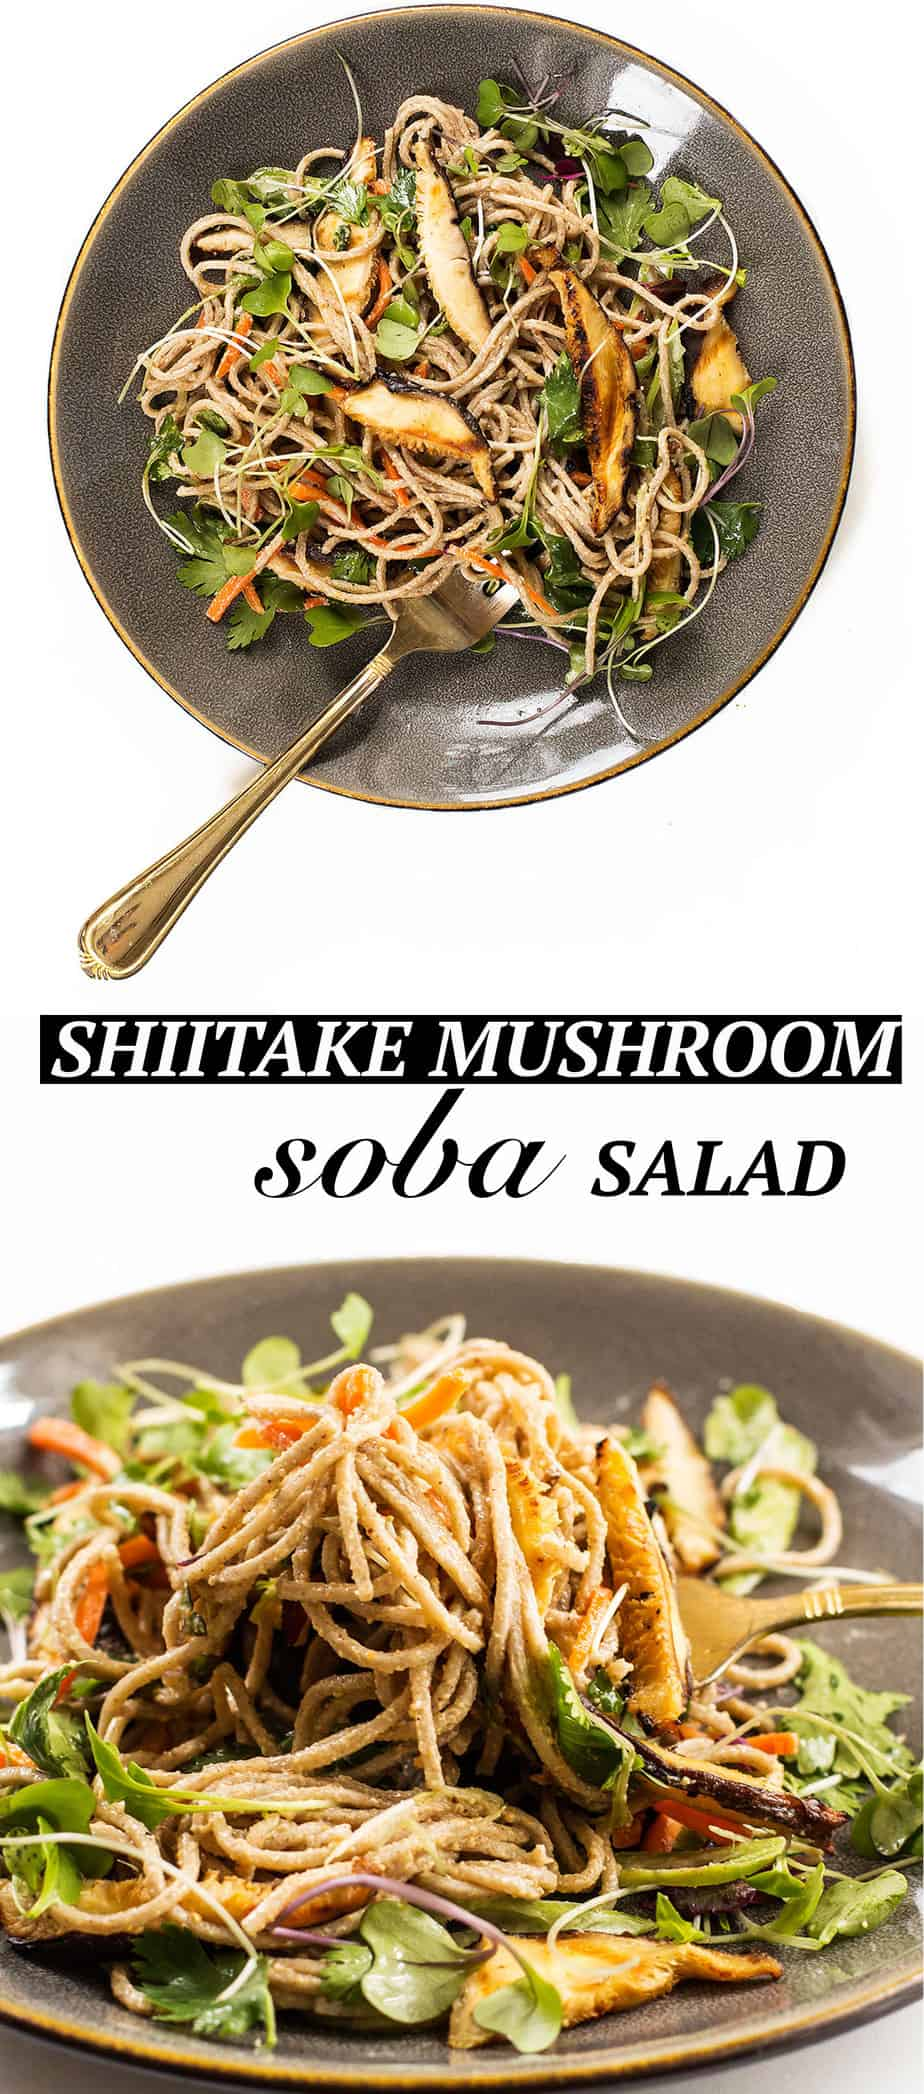 shiitake mushroom soba salad - This cold shiitake mushroom soba noodle salad is perfect for lunch or as a side-dish and is very filling. The peanut sauce dressing boosts the flavor to a new level. This recipe will be ready in less than 15 minutes.